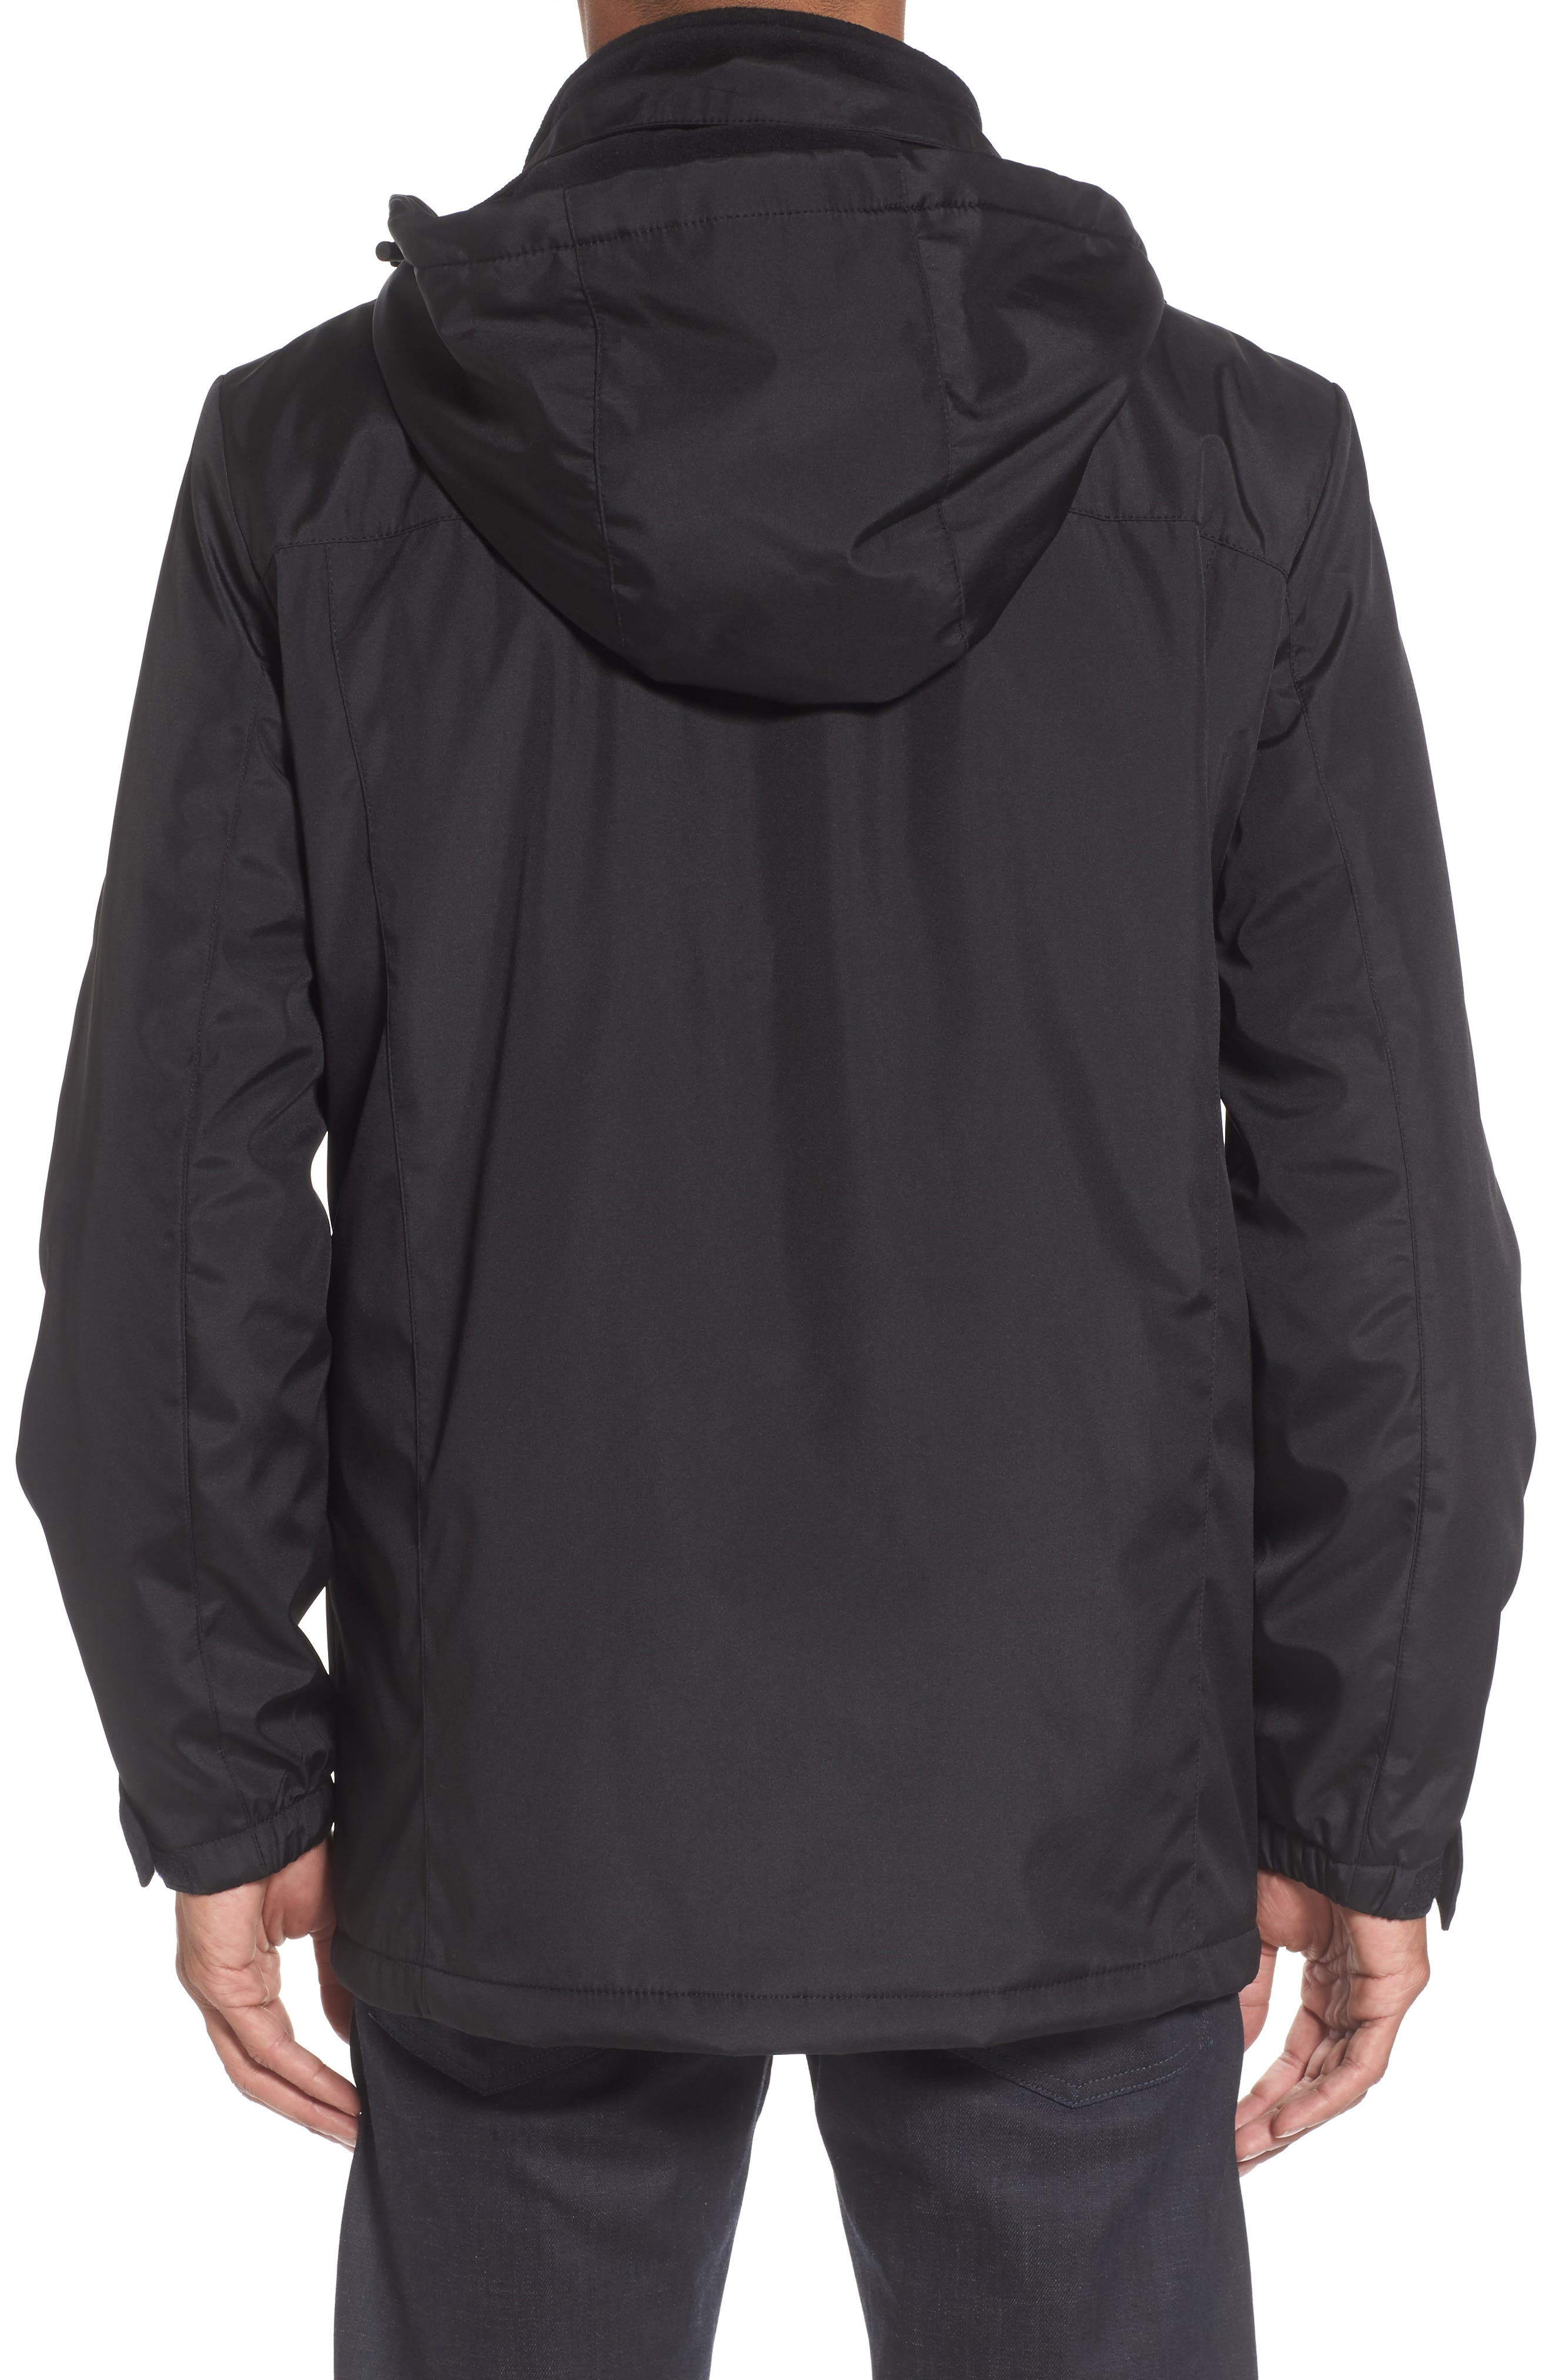 Hooded Jacket with Inset Fleece Bib,                             Alternate thumbnail 4, color,                             Black